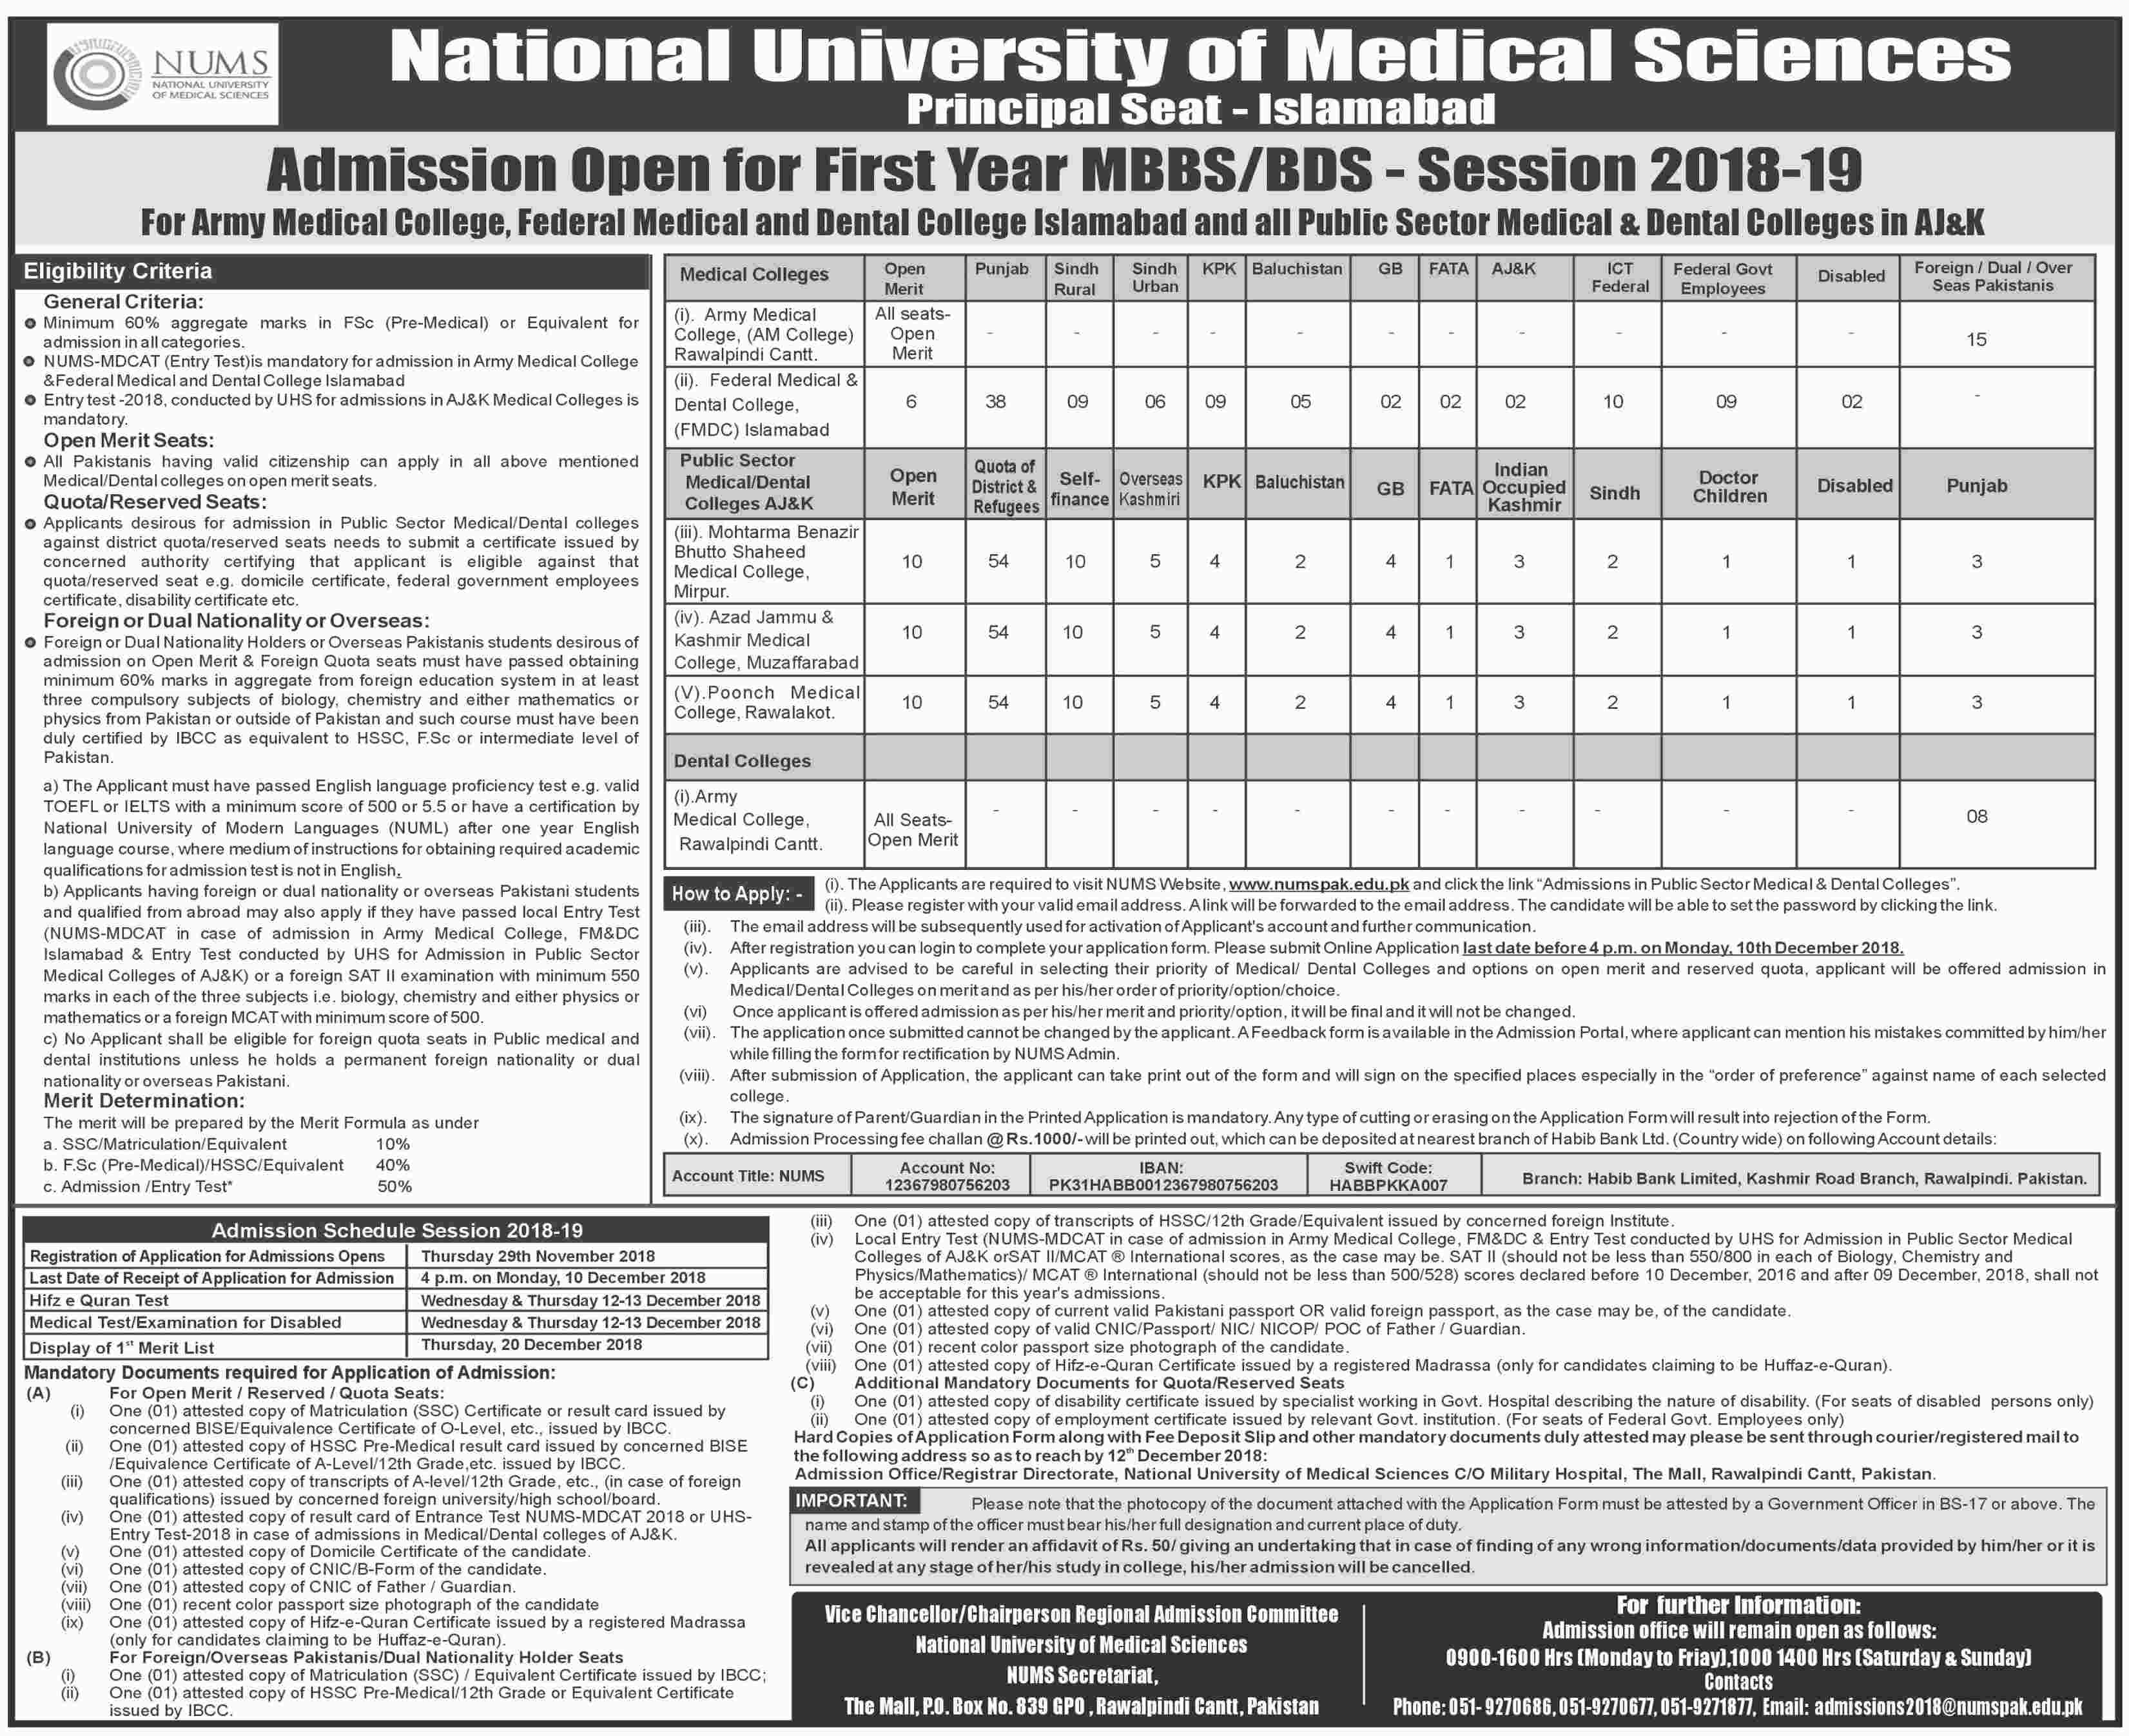 NUMS MBBS BDS Admission Open Session 2018-19